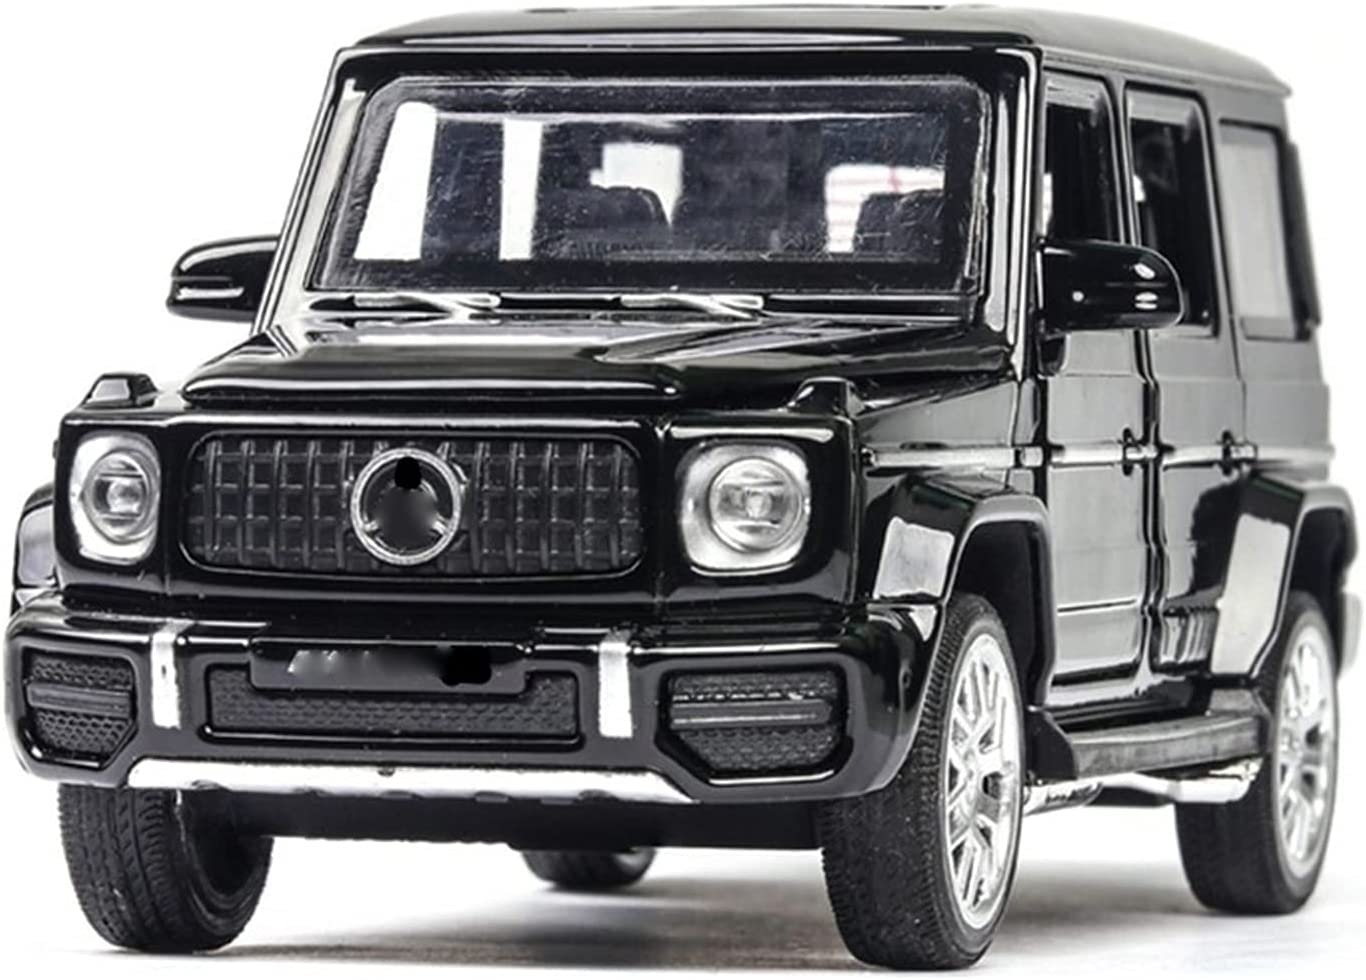 NRSM car Toy 1:32 for G63-G65 Car Spring new work Safety and trust one after another Diecast Alloy SUV Model